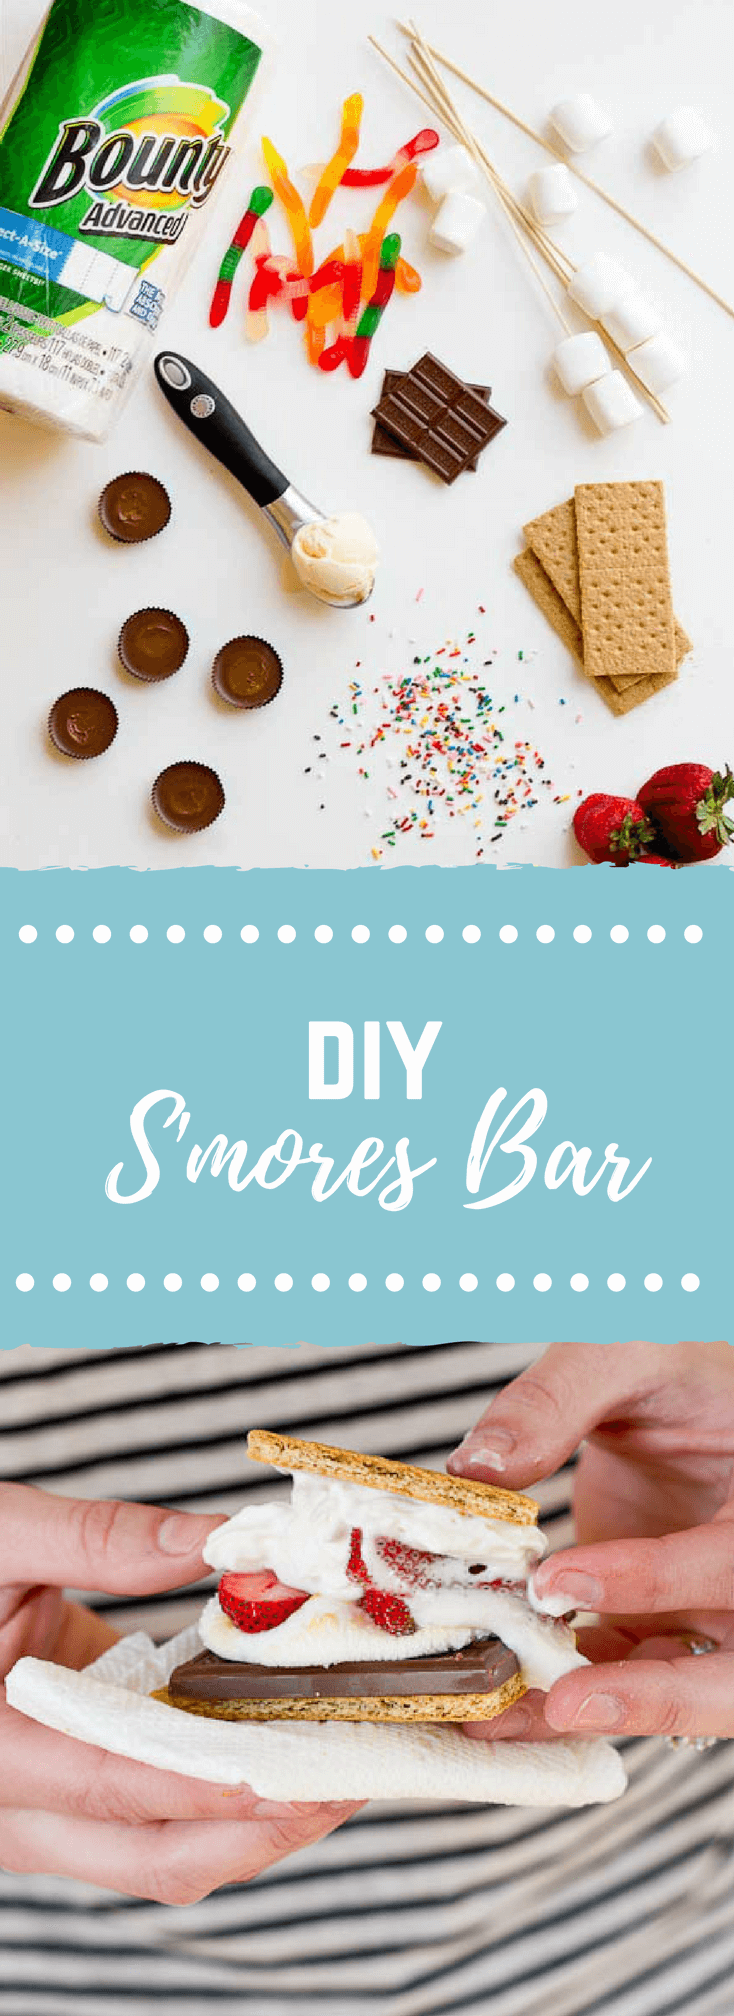 DIY Smores Bar- This DIY S'mores Bar aka Do it Yourself is perfect for your next cookout for lots of family and friend fun.